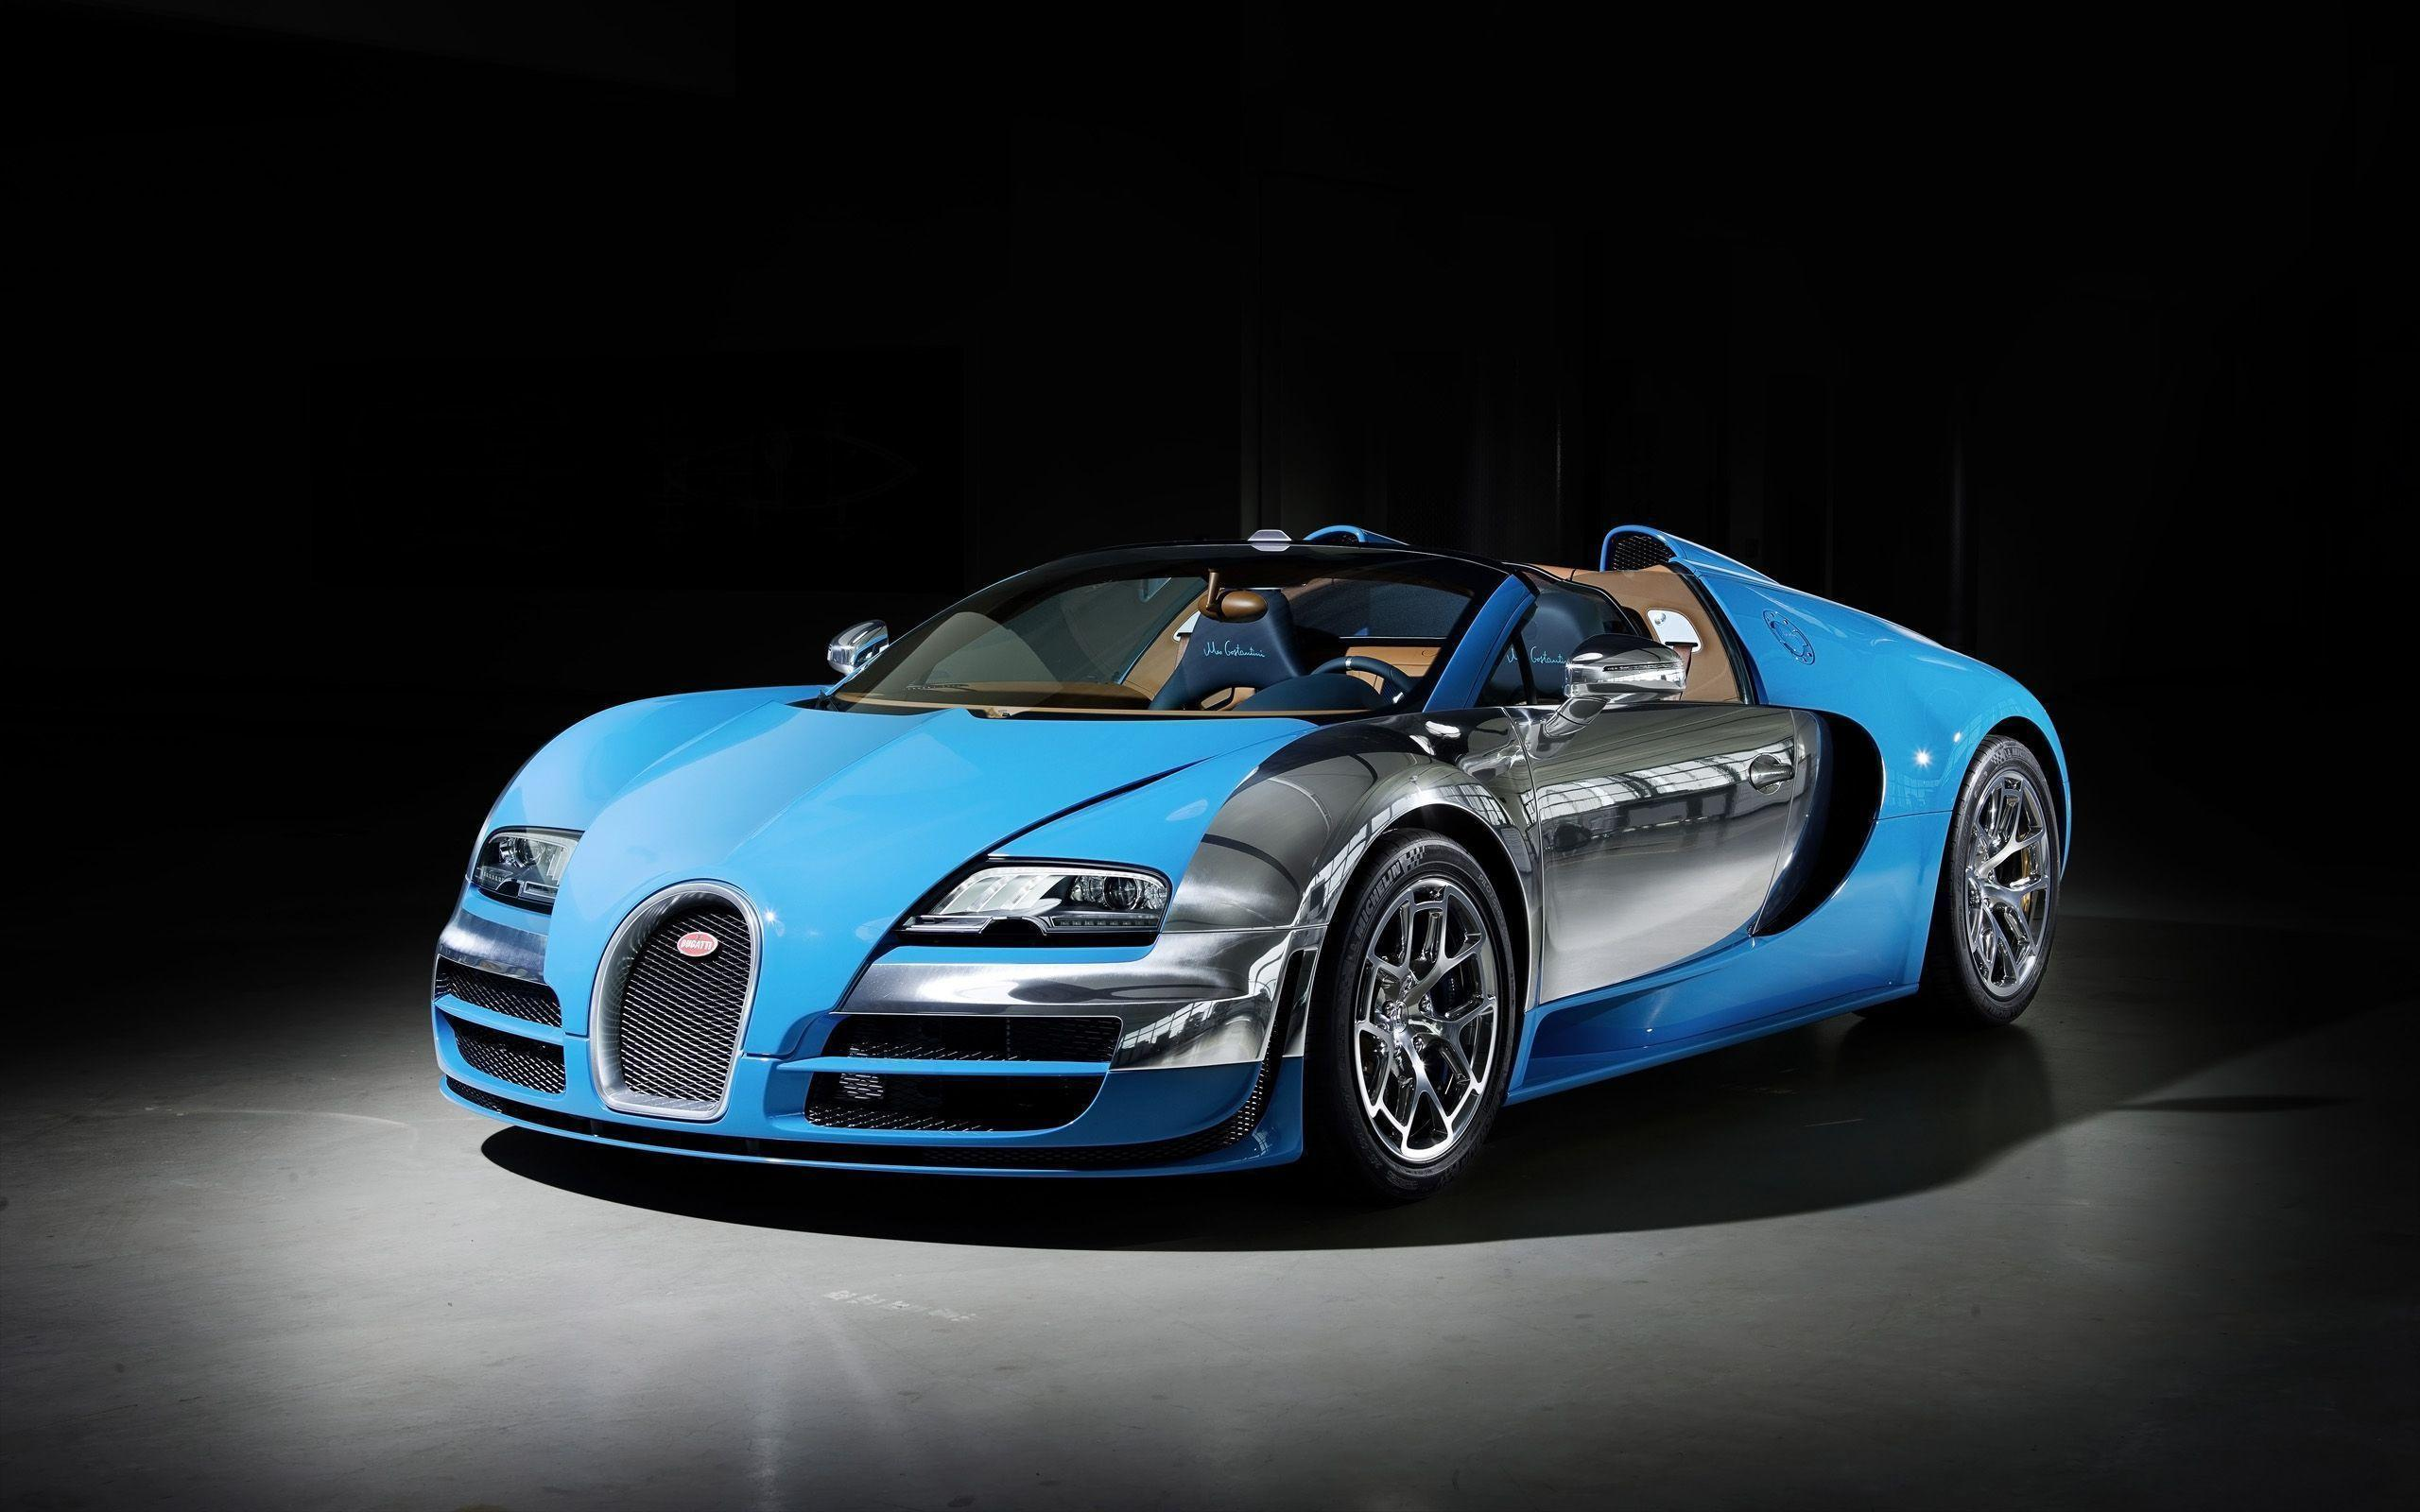 Nothing found for 2014 Bugatti Veyron Convertible Hd Desktop